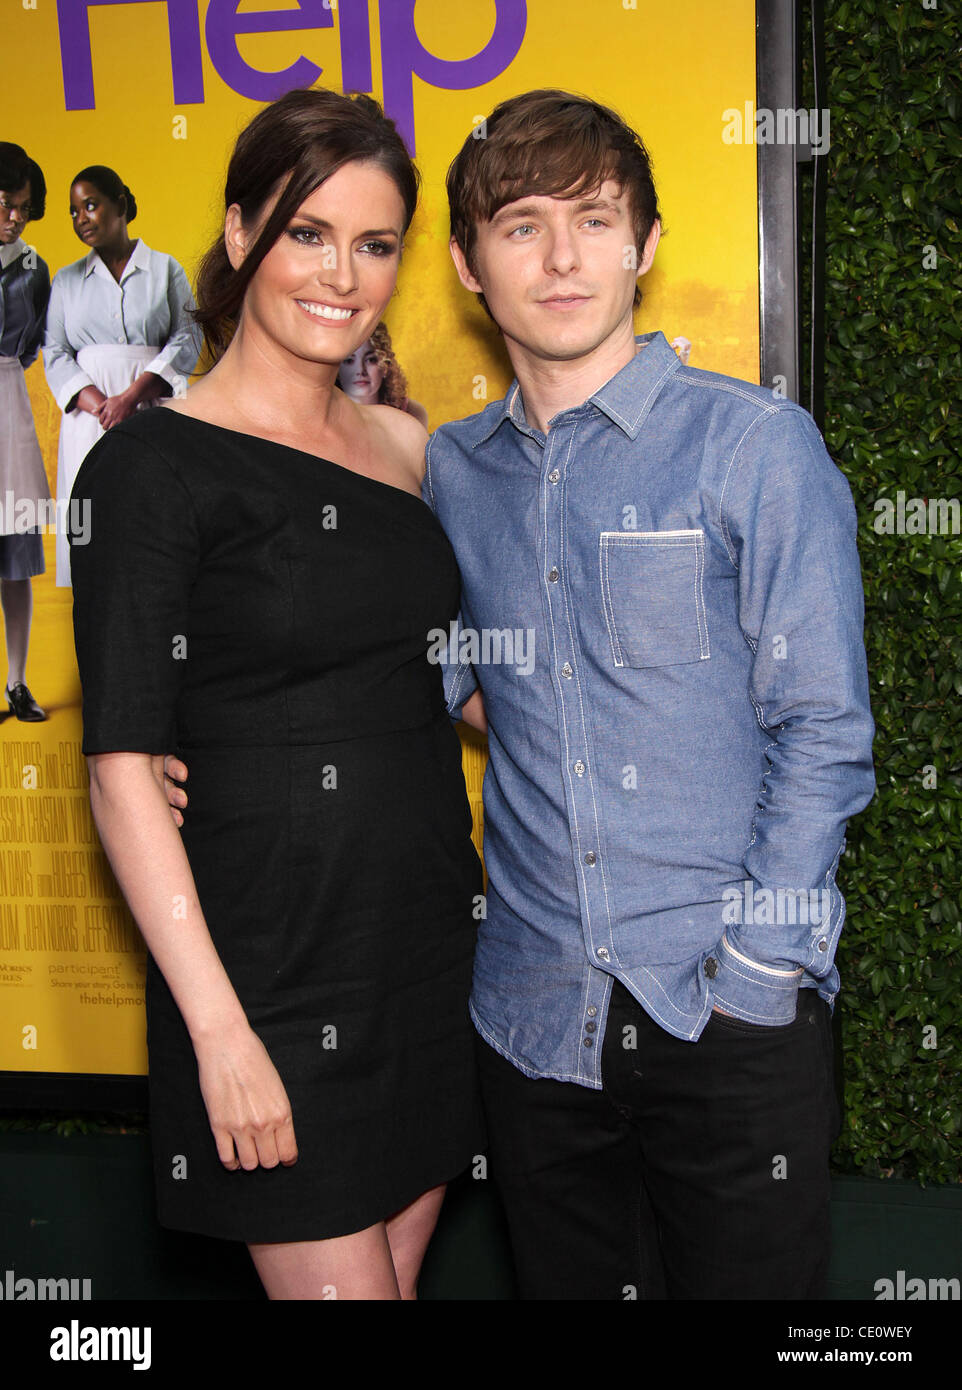 Aug. 9, 2011 - Beverly Hills, California, U.S. - MARSHALL & JAMIE ALLMAN arrives for the premiere of the film - Stock Image